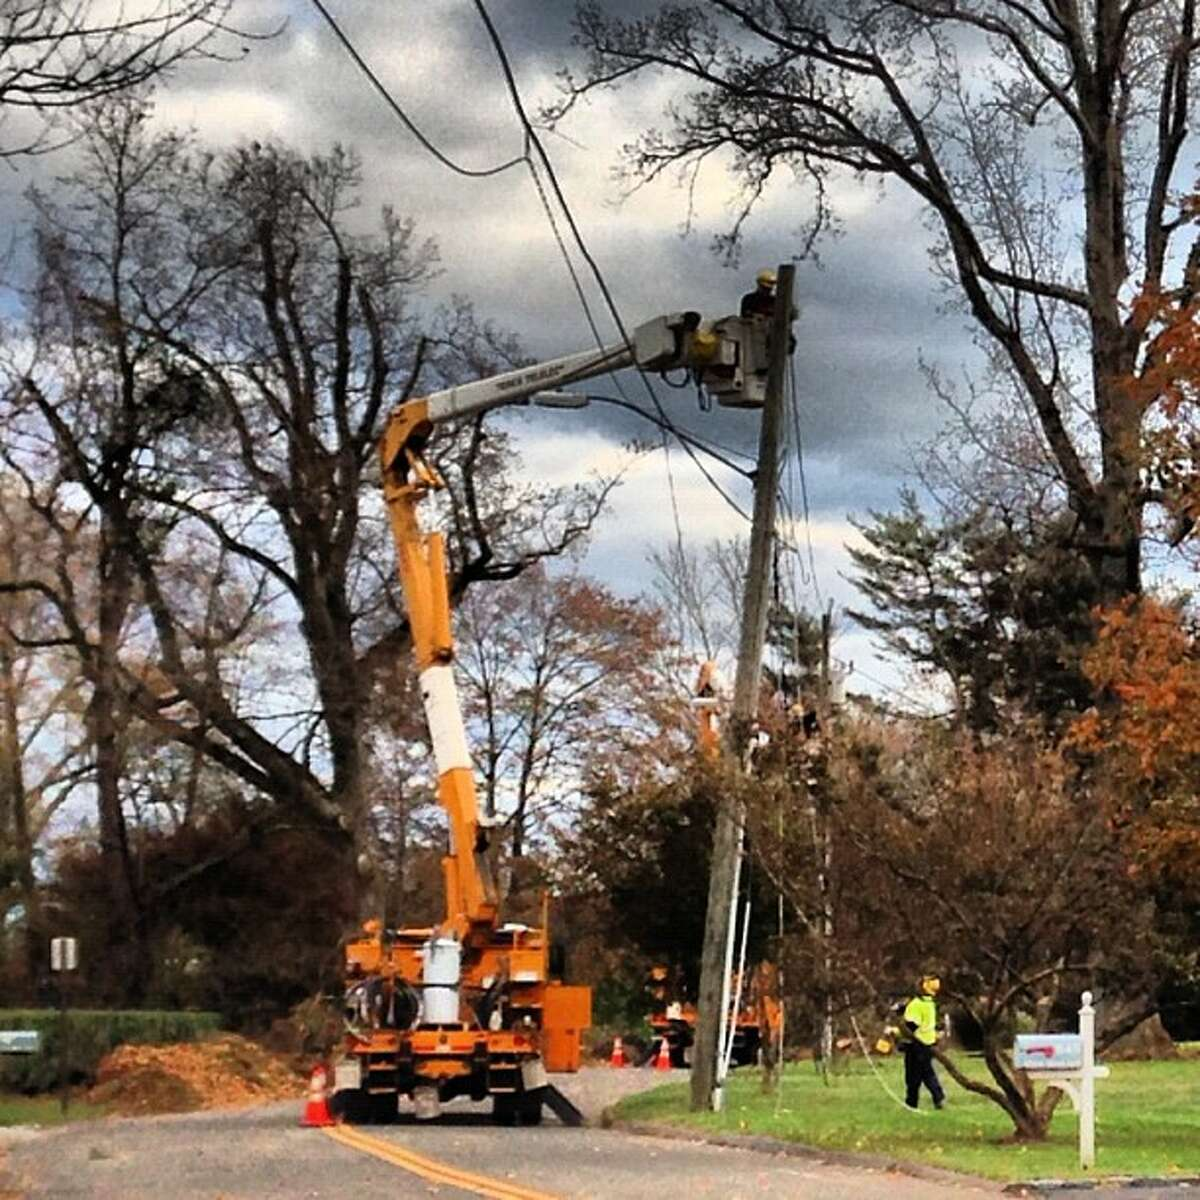 The Indiana crew is working in front of Gov. Malloy's old house in Stamford. (Photo by Kara Billhardt)